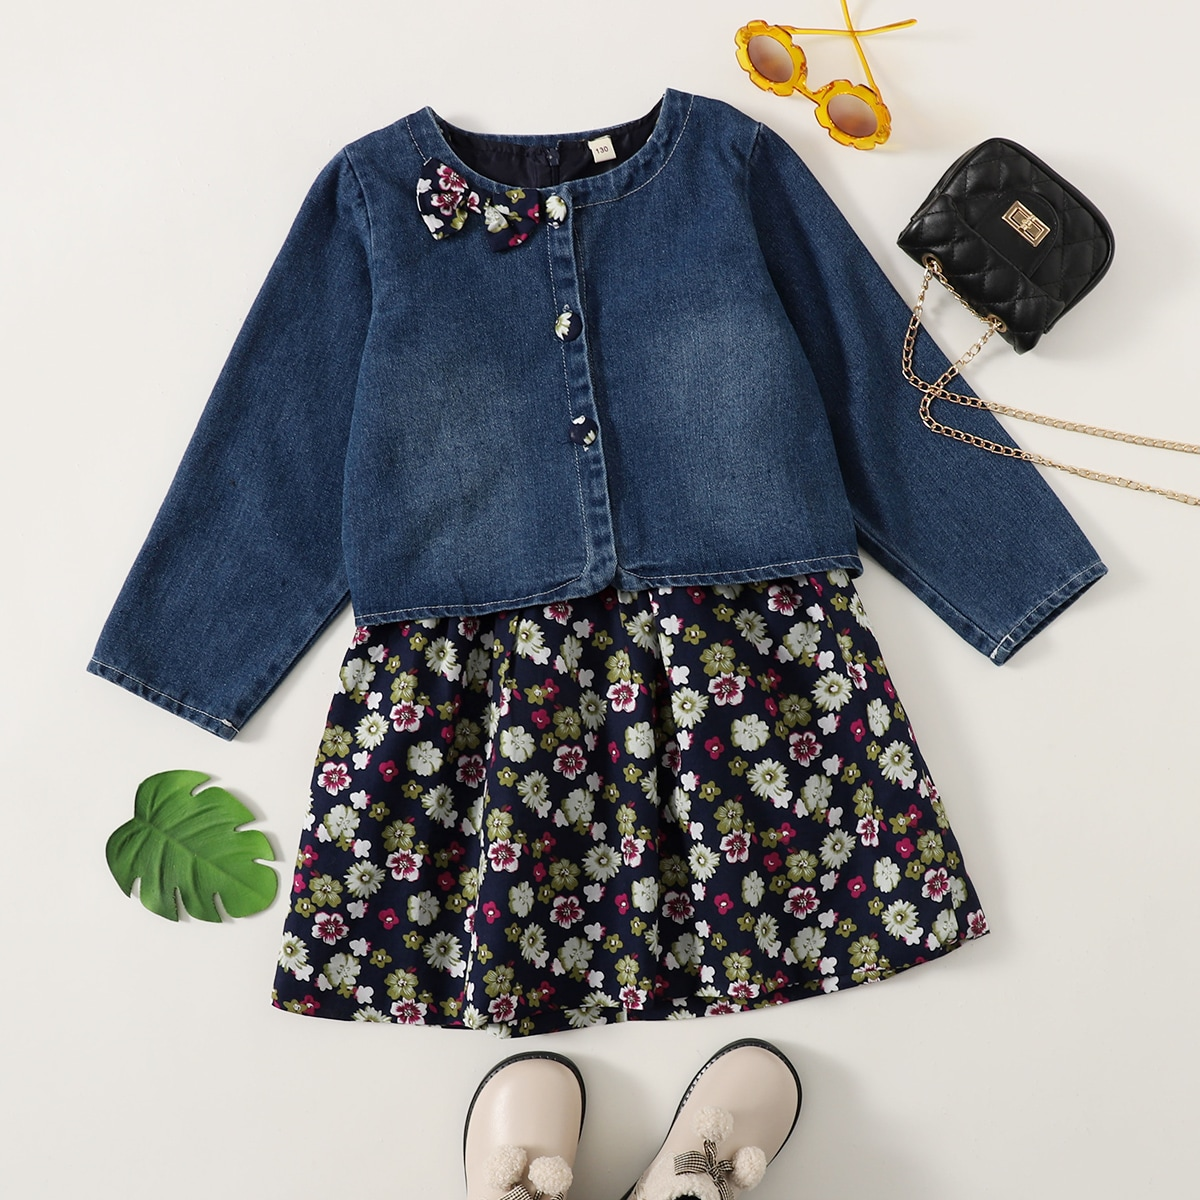 SHEIN / Girls Floral Print Dress With Bow Front Denim Jacket